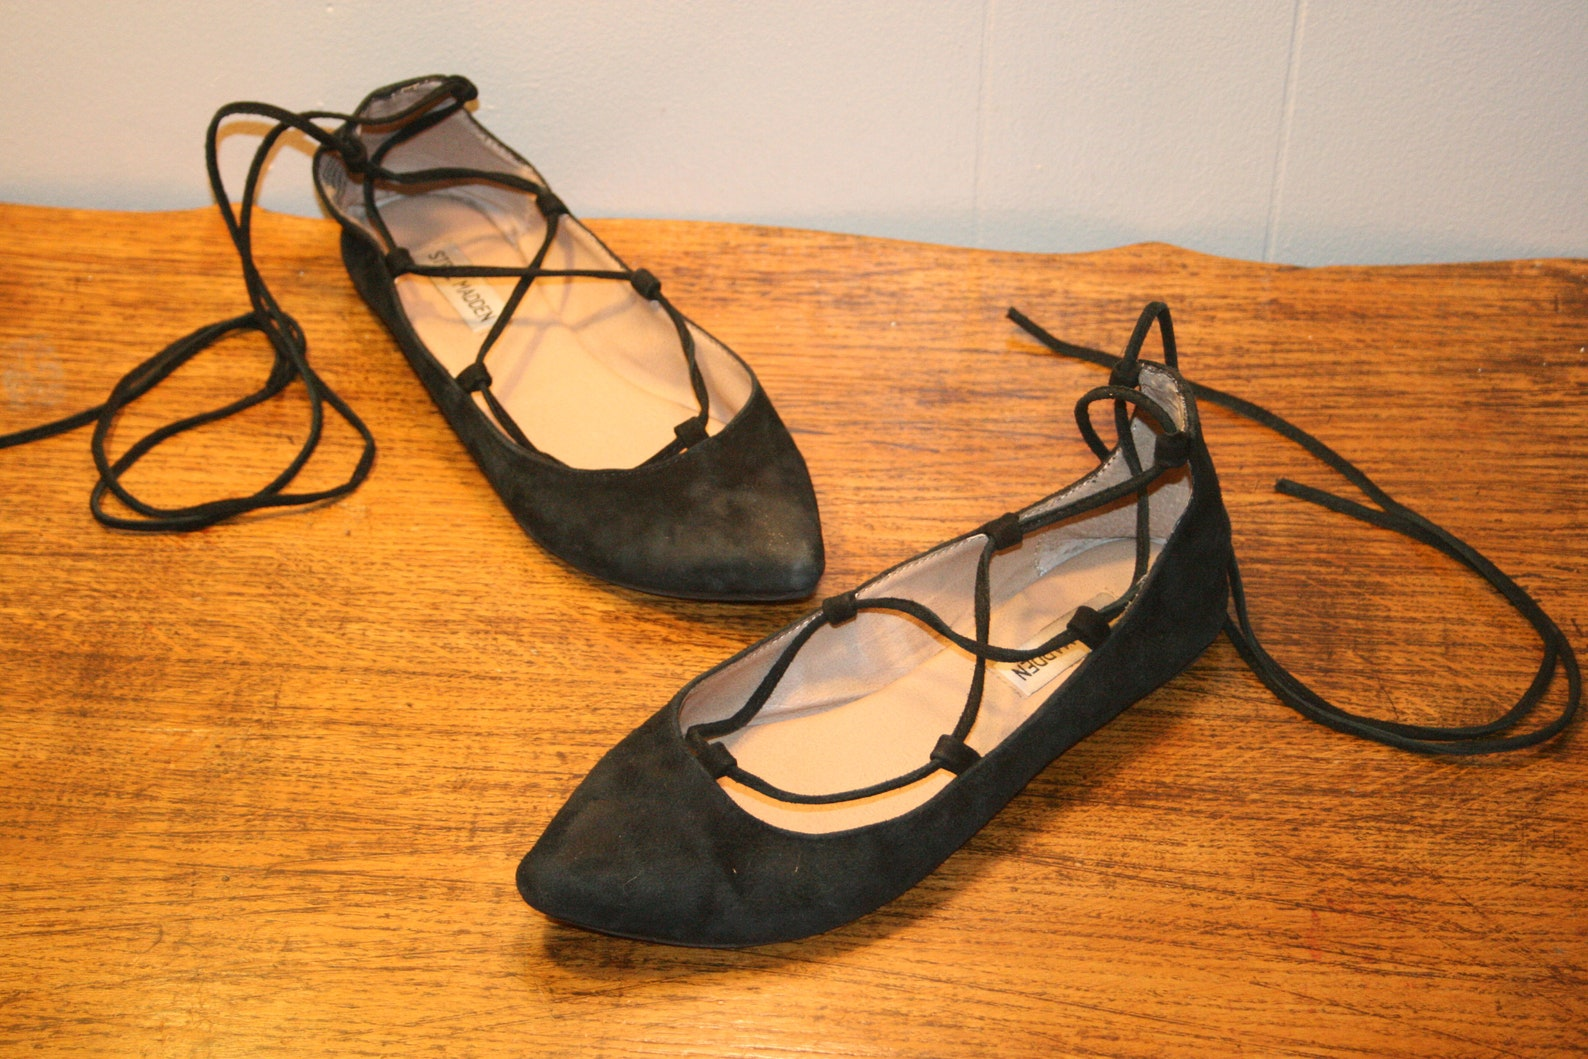 size 7,goth leather flats,wrap around flats,flats for women,leather flats 7,flats 7,ballet flats,ballet flats for women,ballet f